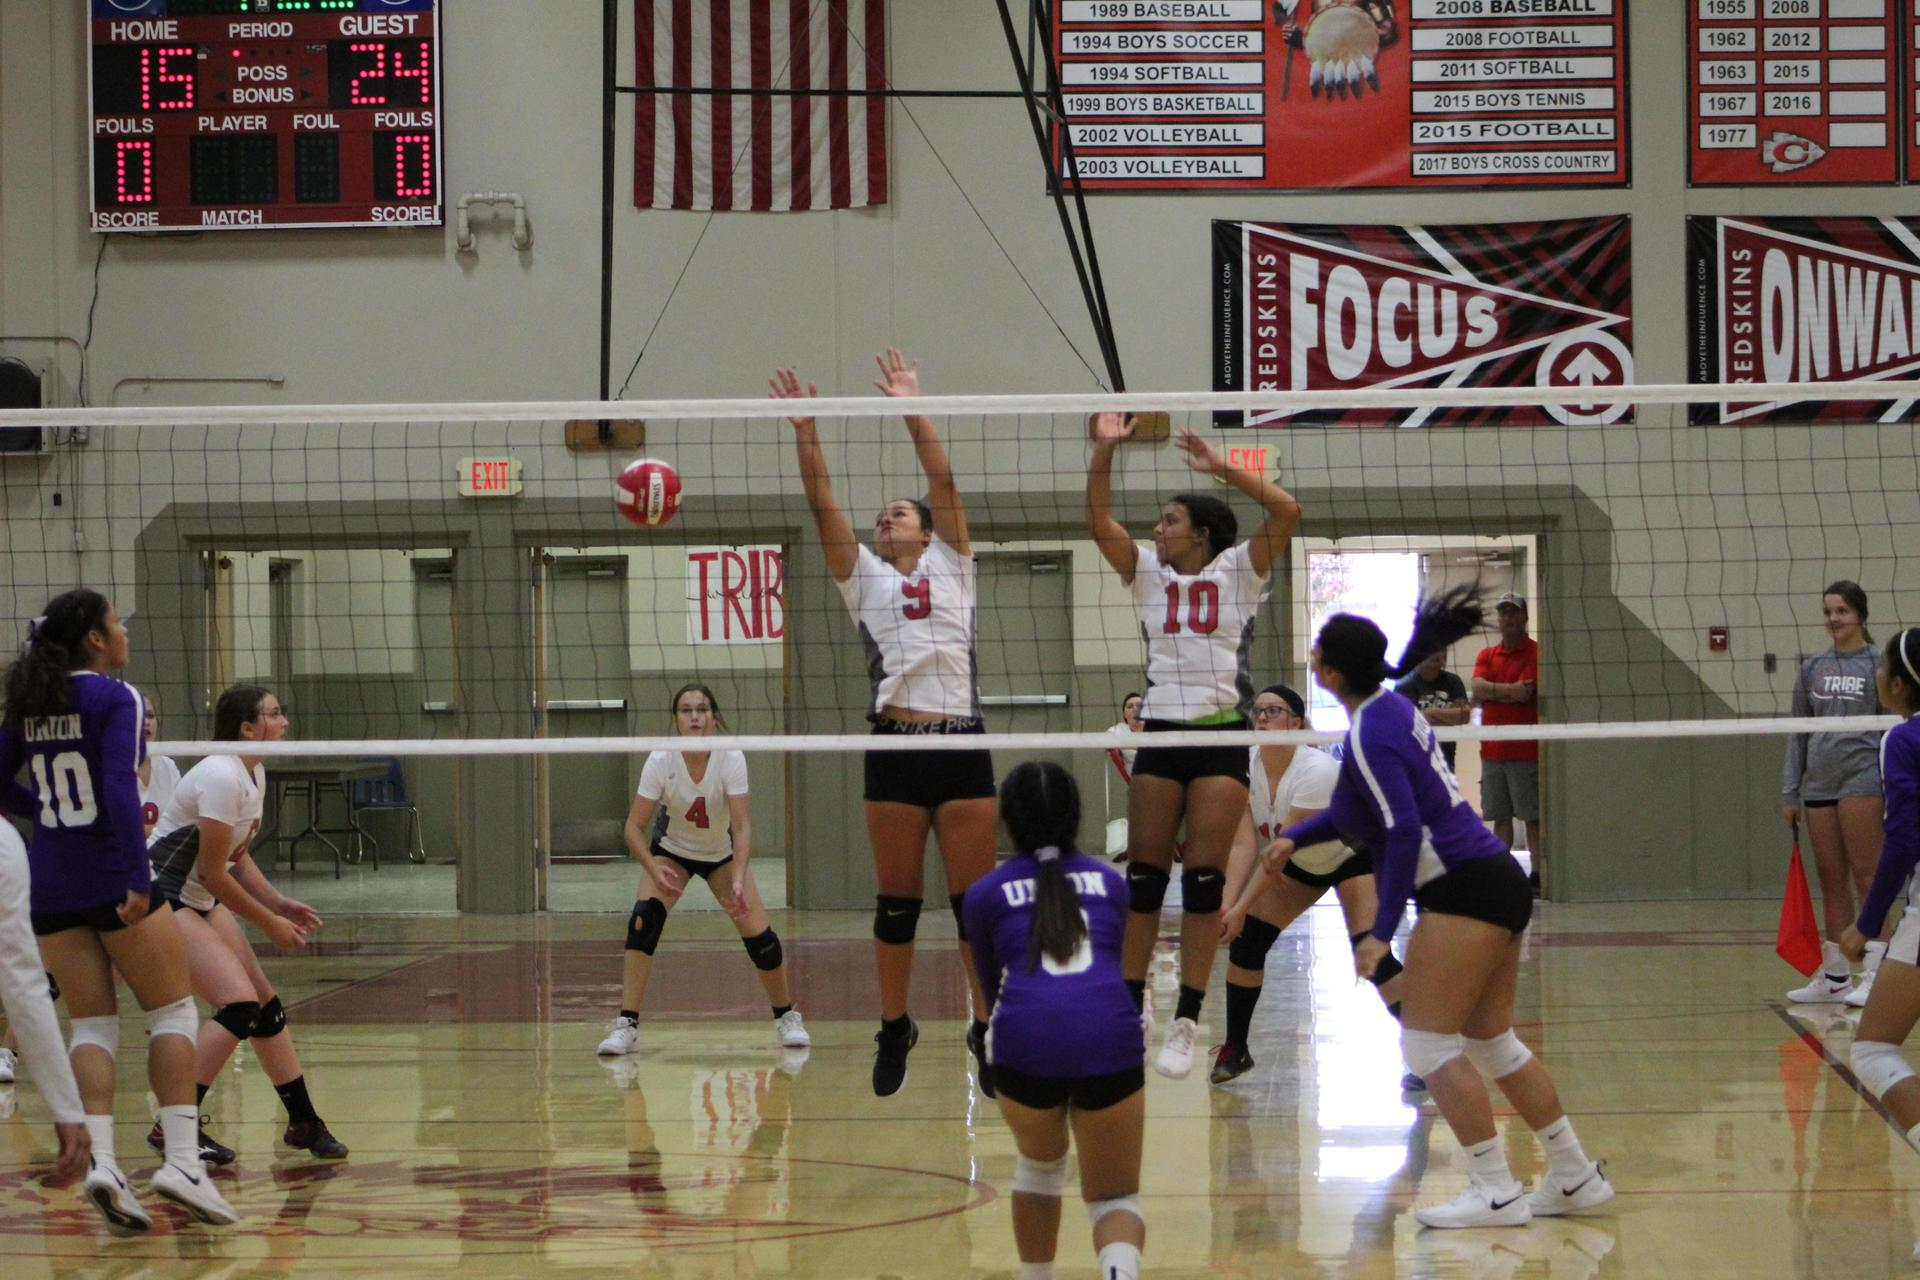 Junior Varsity Girls playing volleyball against Washington